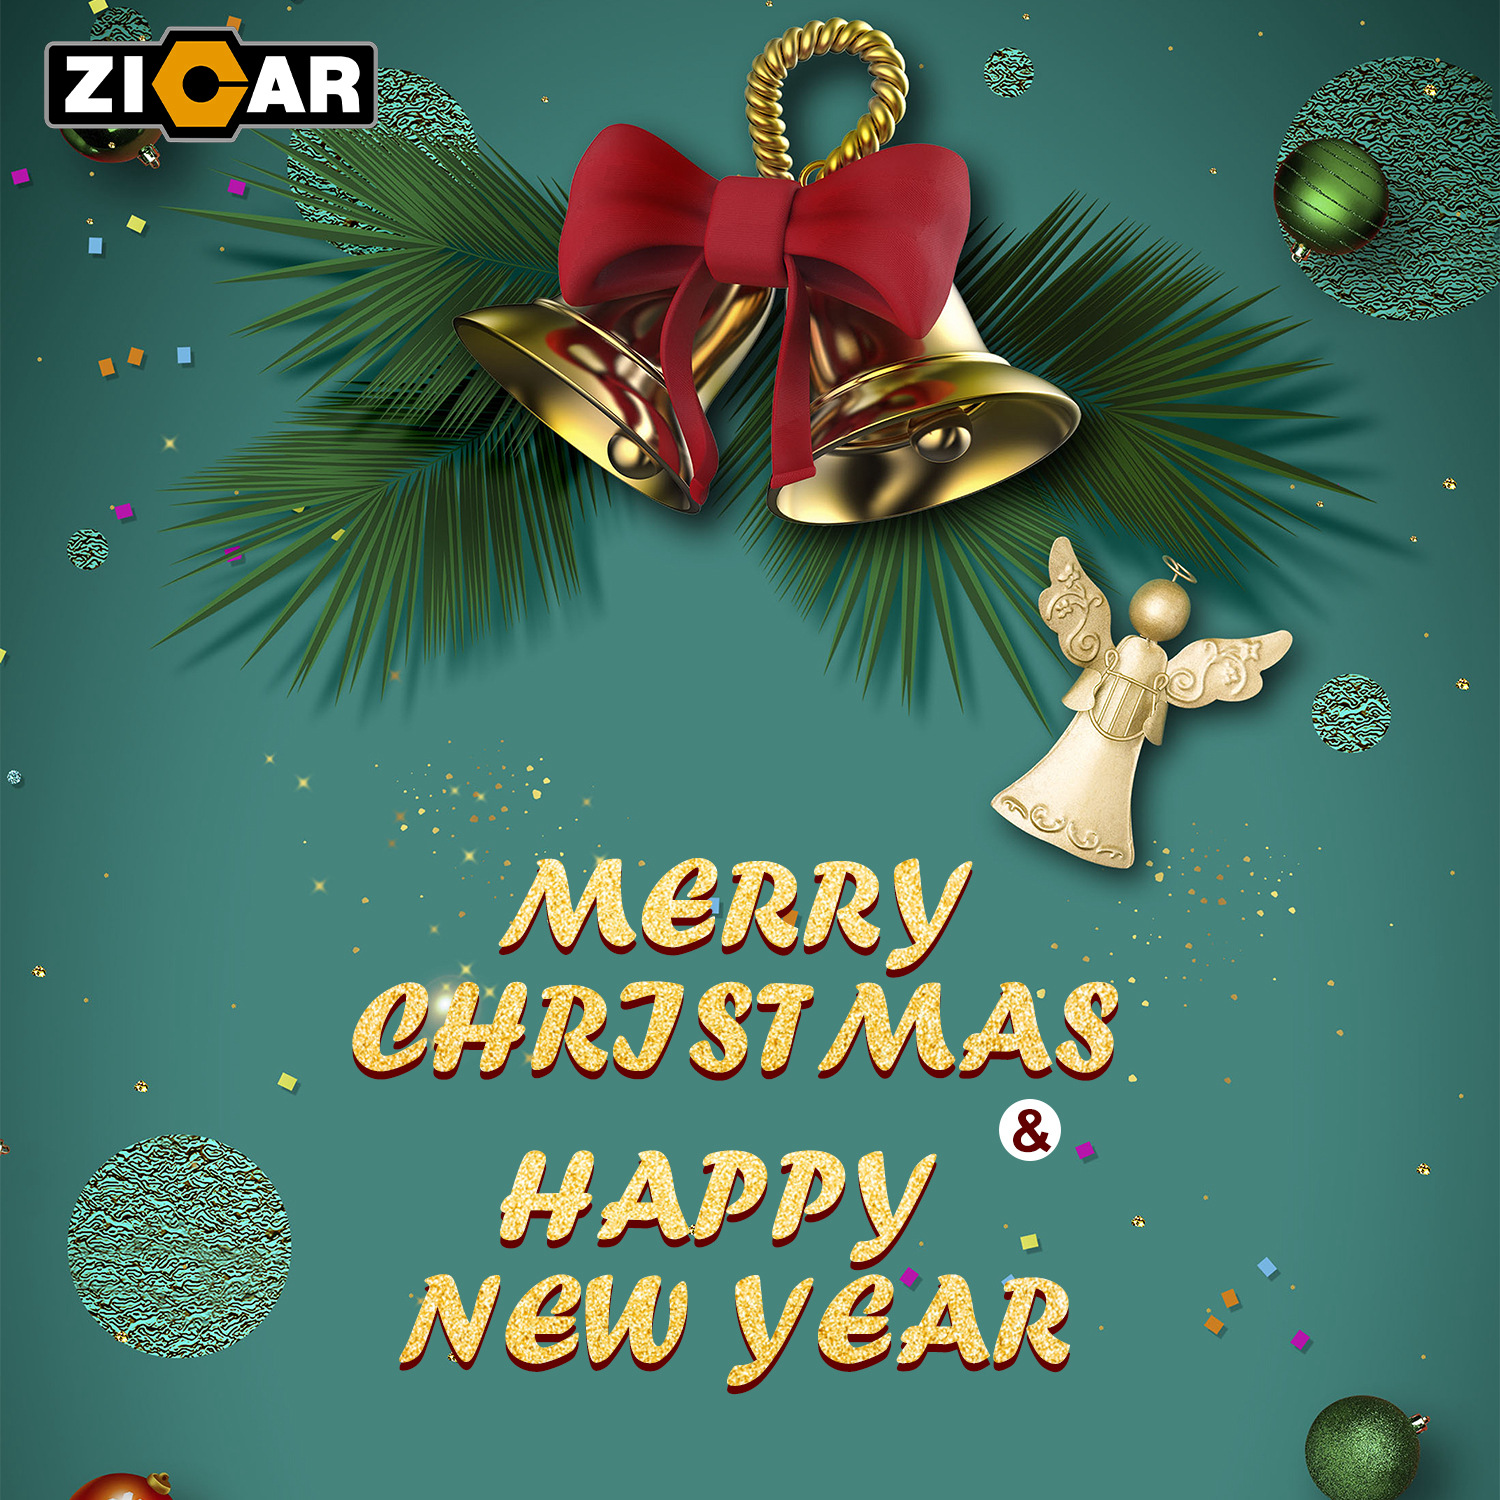 Zicar wish you Merry Christmas and Happy New Year!